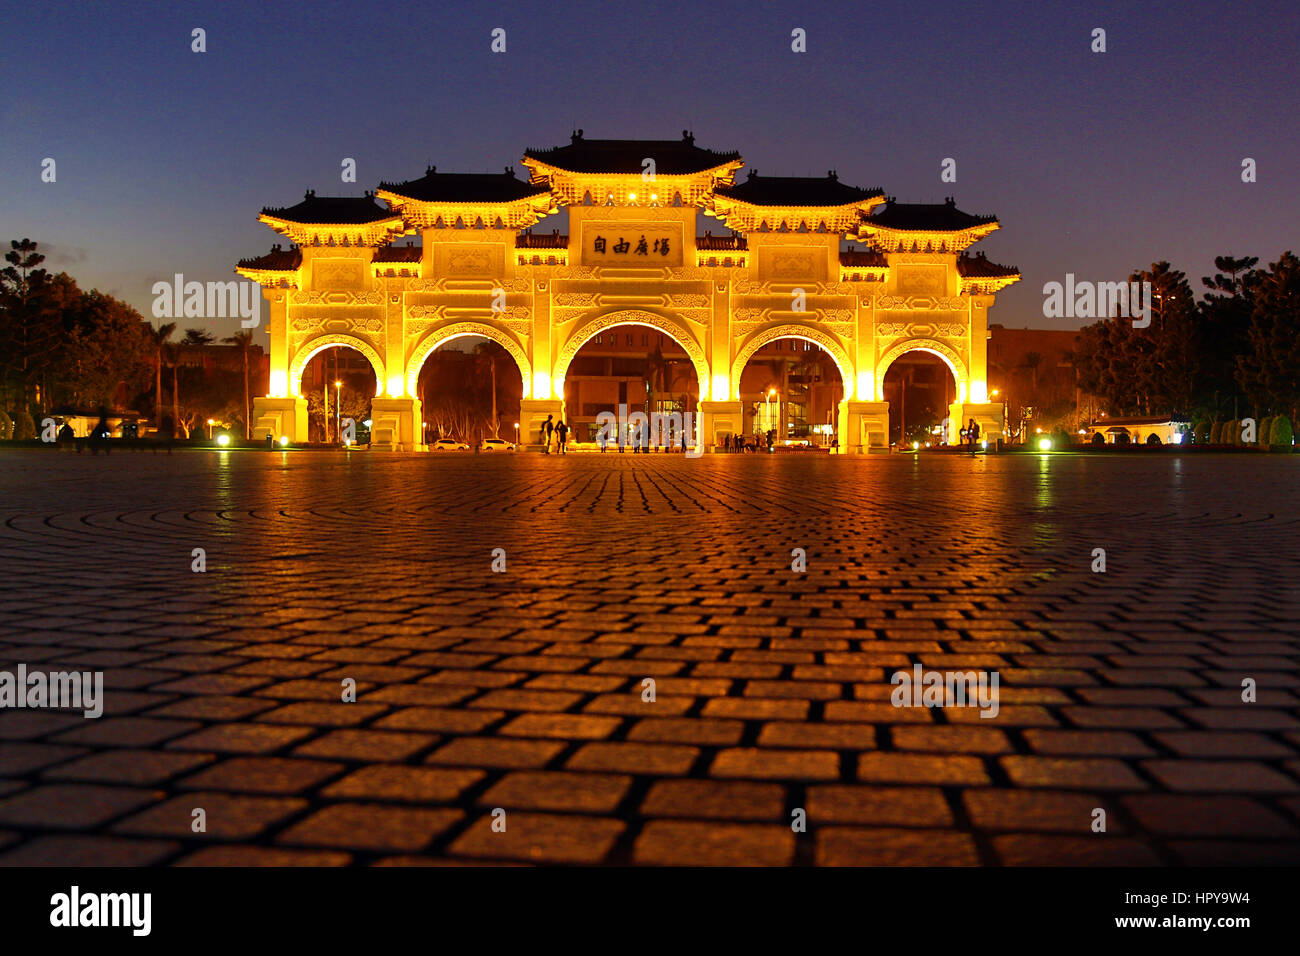 The National Chiang Kai Shek Memorial Hall Main Gate illuminated at night in Taipei, Taiwan. Stock Photo